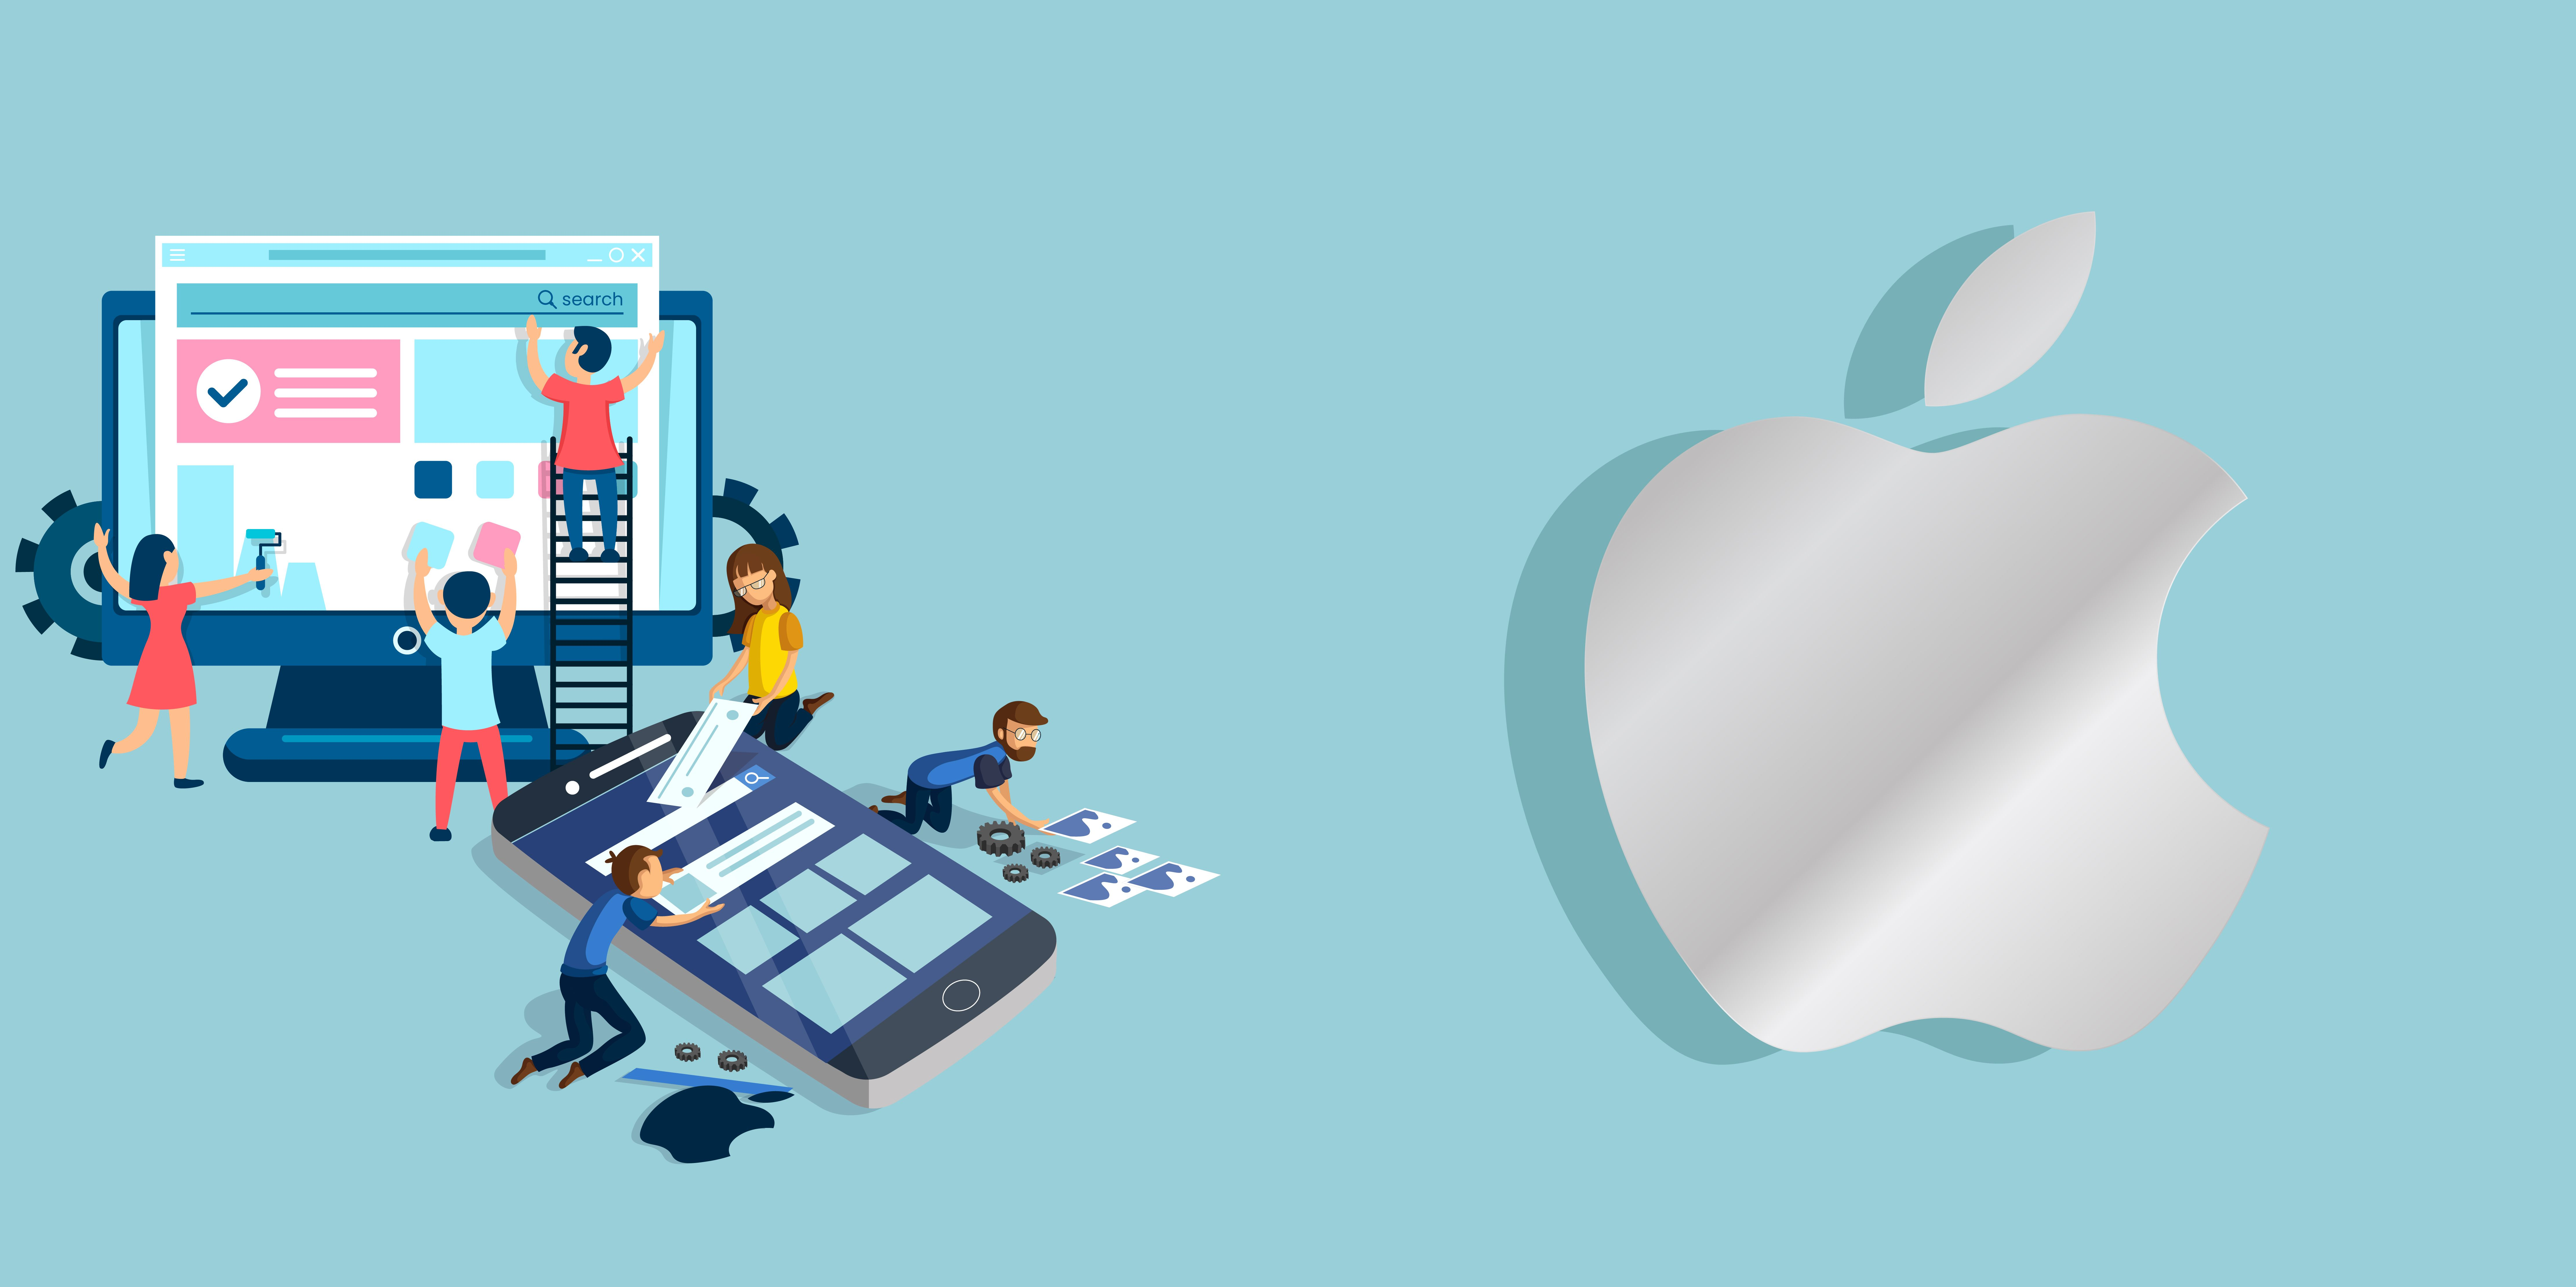 With an experienced and expert team of iOS App developers